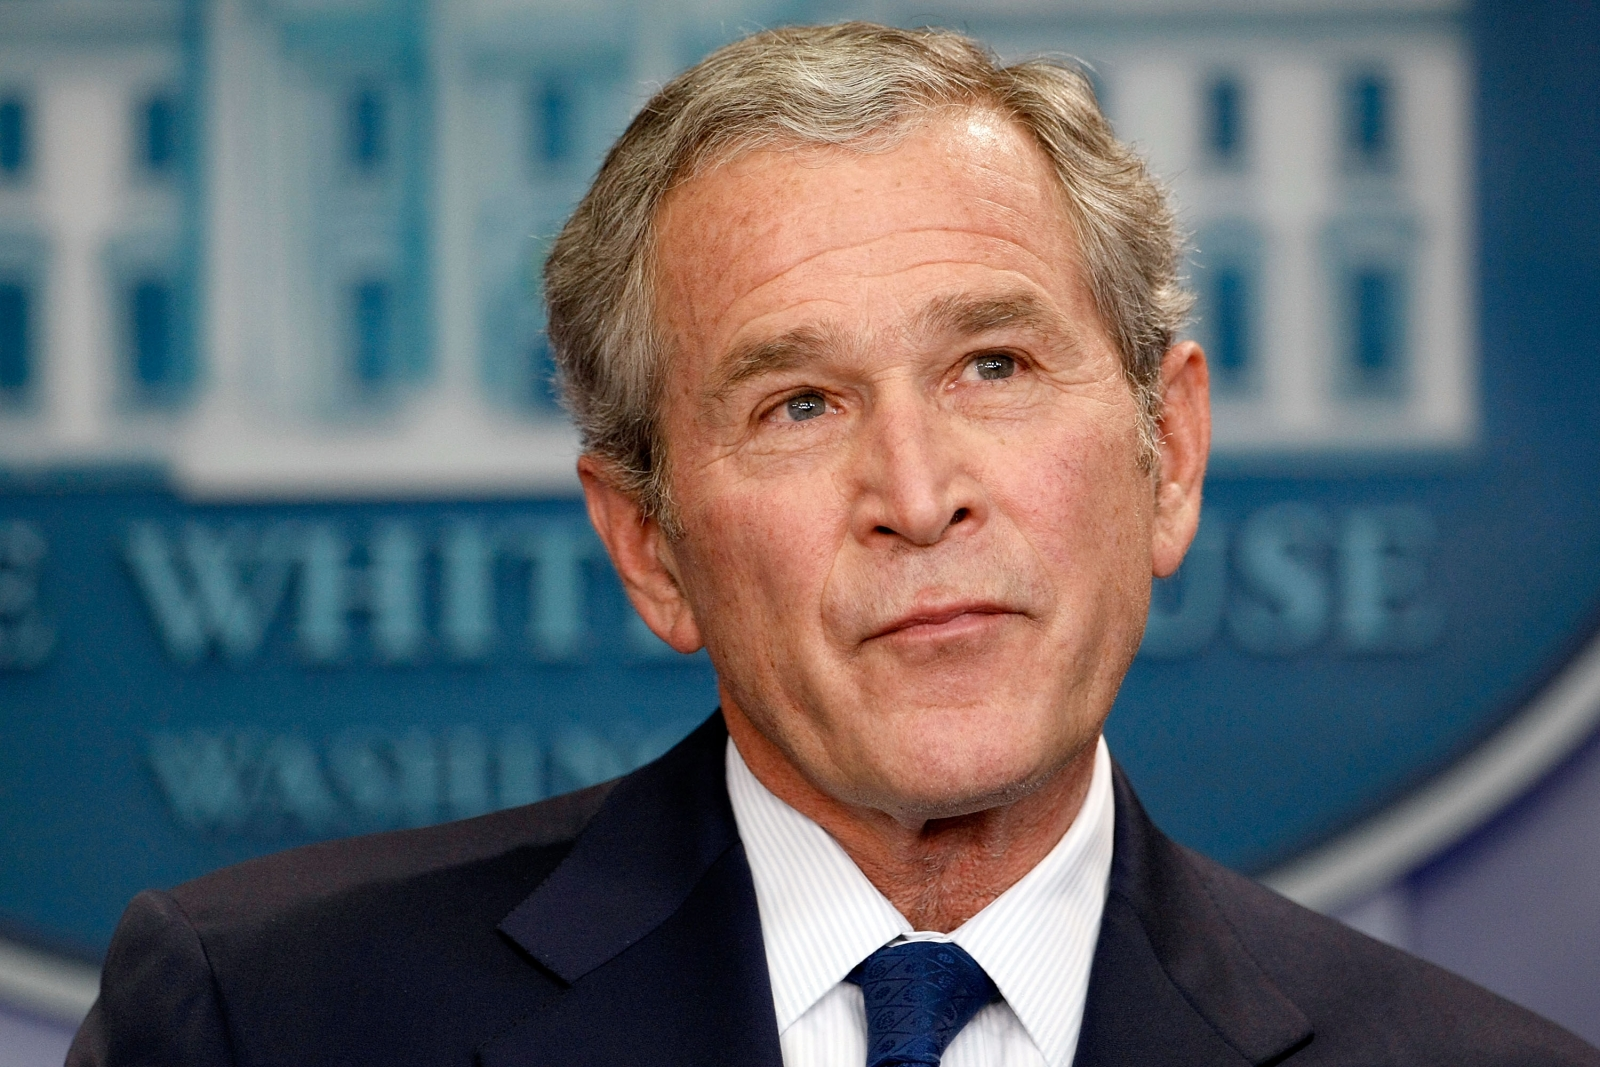 Kanye West Famous Video: What did George W Bush say to his ...